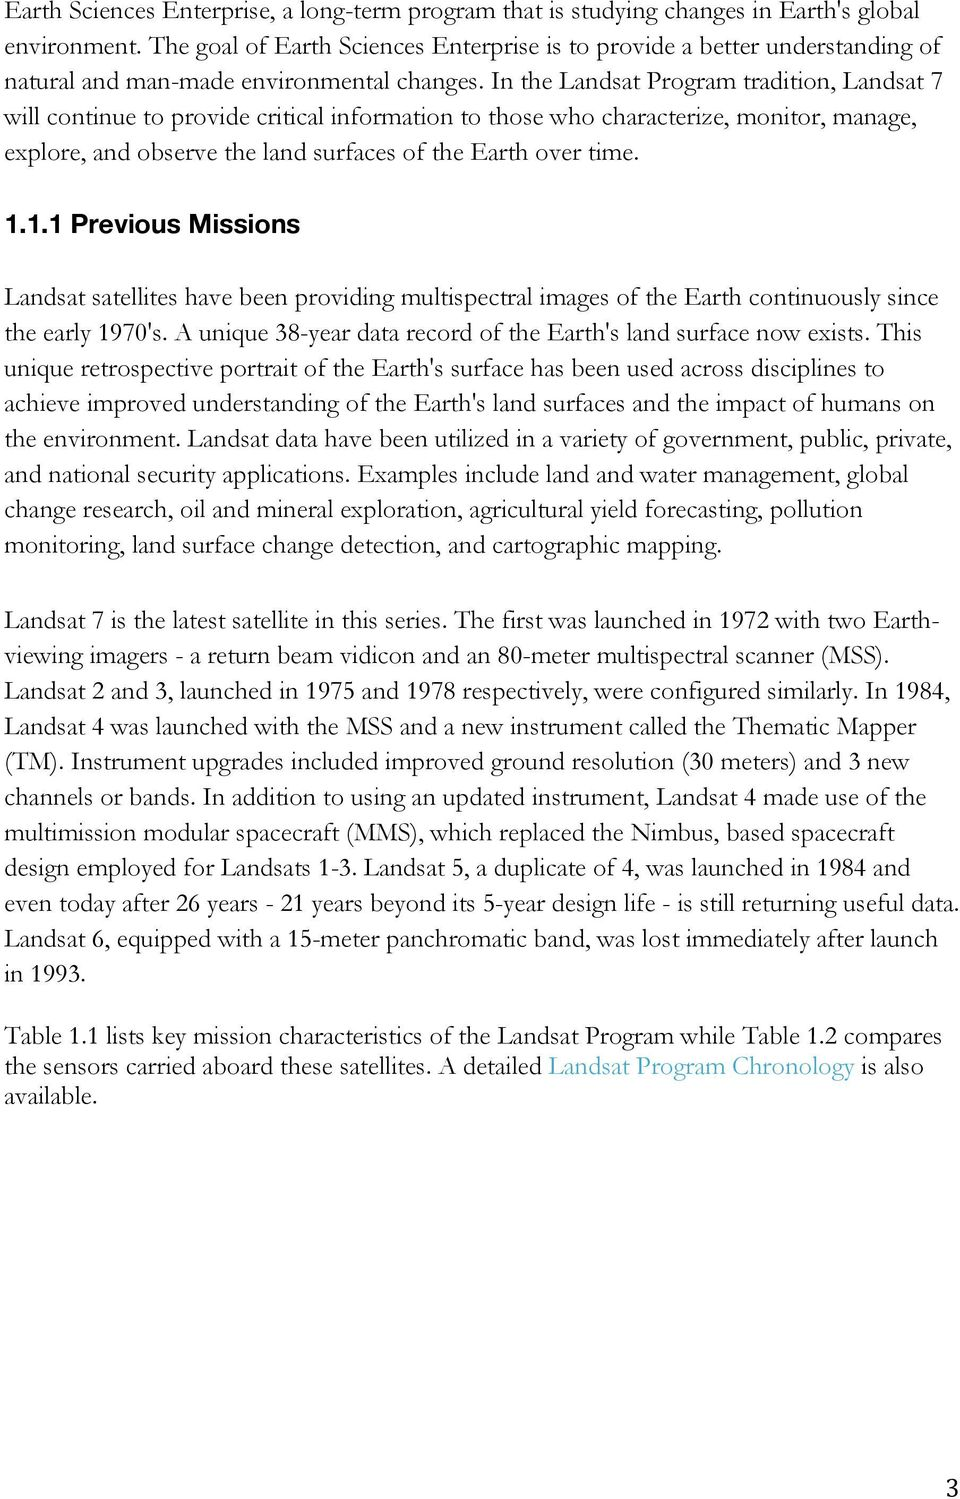 In the Landsat Program tradition, Landsat 7 will continue to provide critical information to those who characterize, monitor, manage, explore, and observe the land surfaces of the Earth over time. 1.